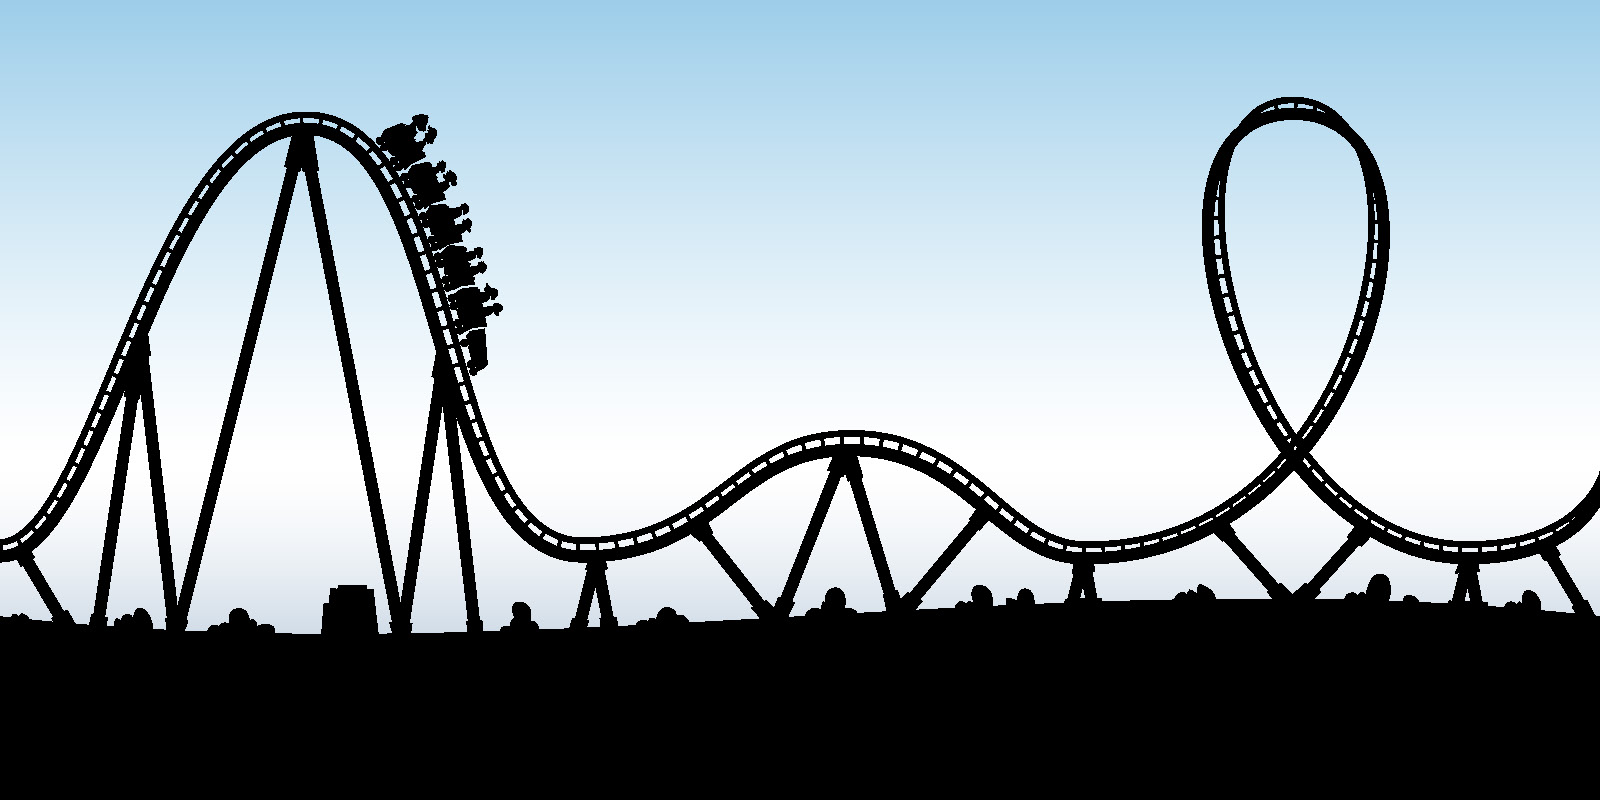 case study riding the emotional roller coaster Free essays on case study 4 2 riding the emotional roller coaster for students use our papers to help you with yours 1 - 30.